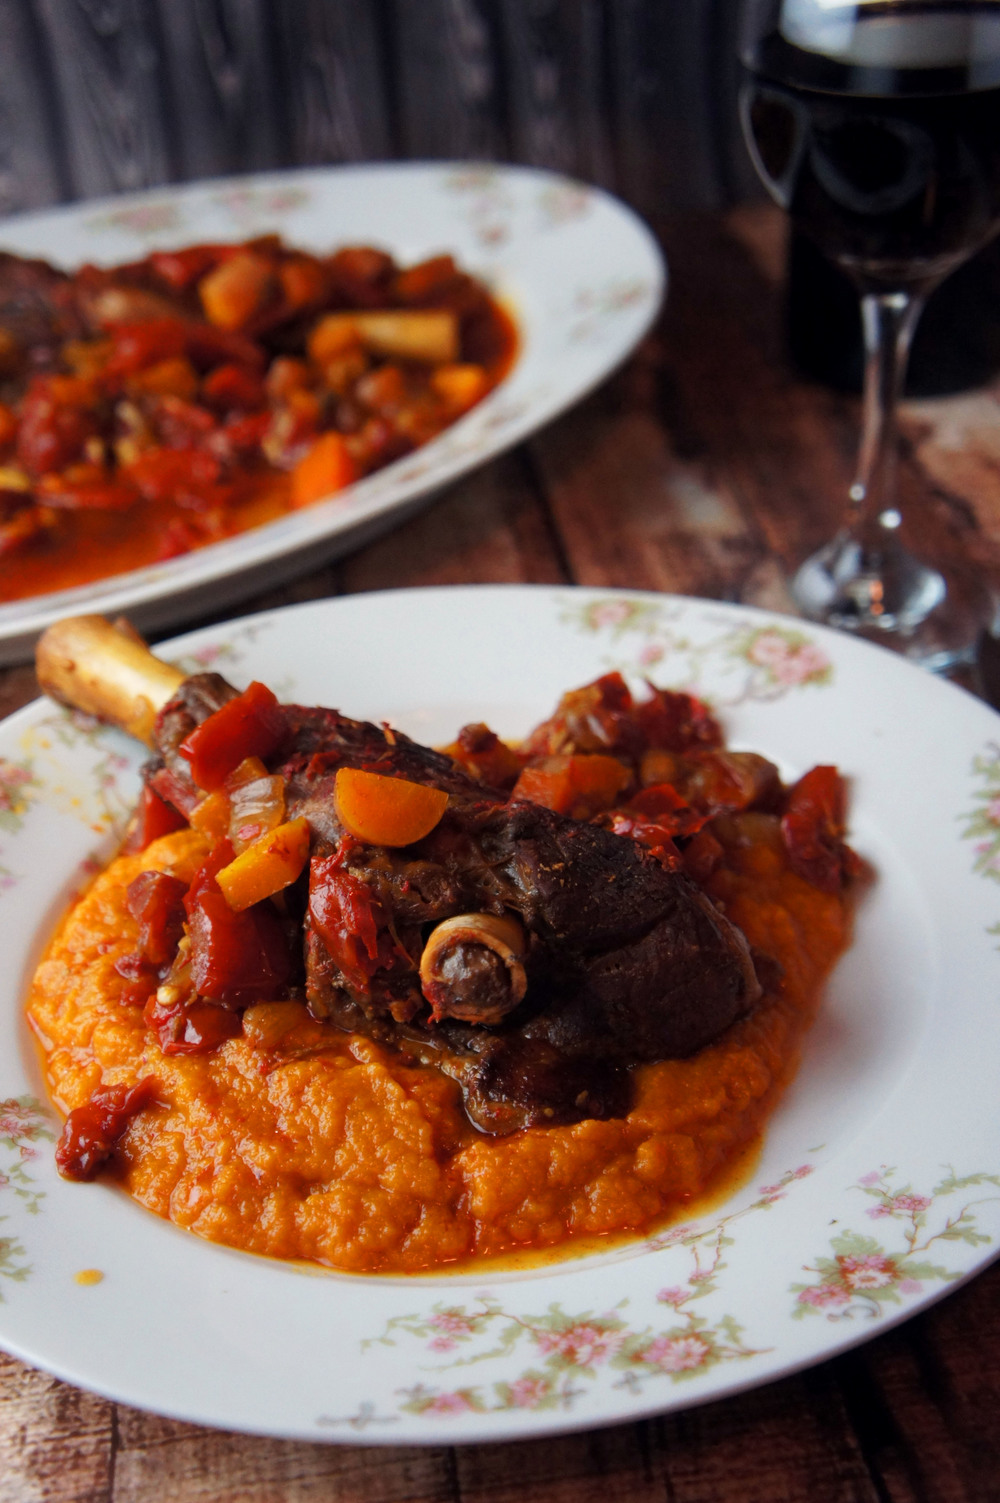 Harissa Goat Shank in the slow cooker with tomatoes, carrots, and butternut squash puree. A paleo dish with middle eastern flavors that can be done in the slow cooker.